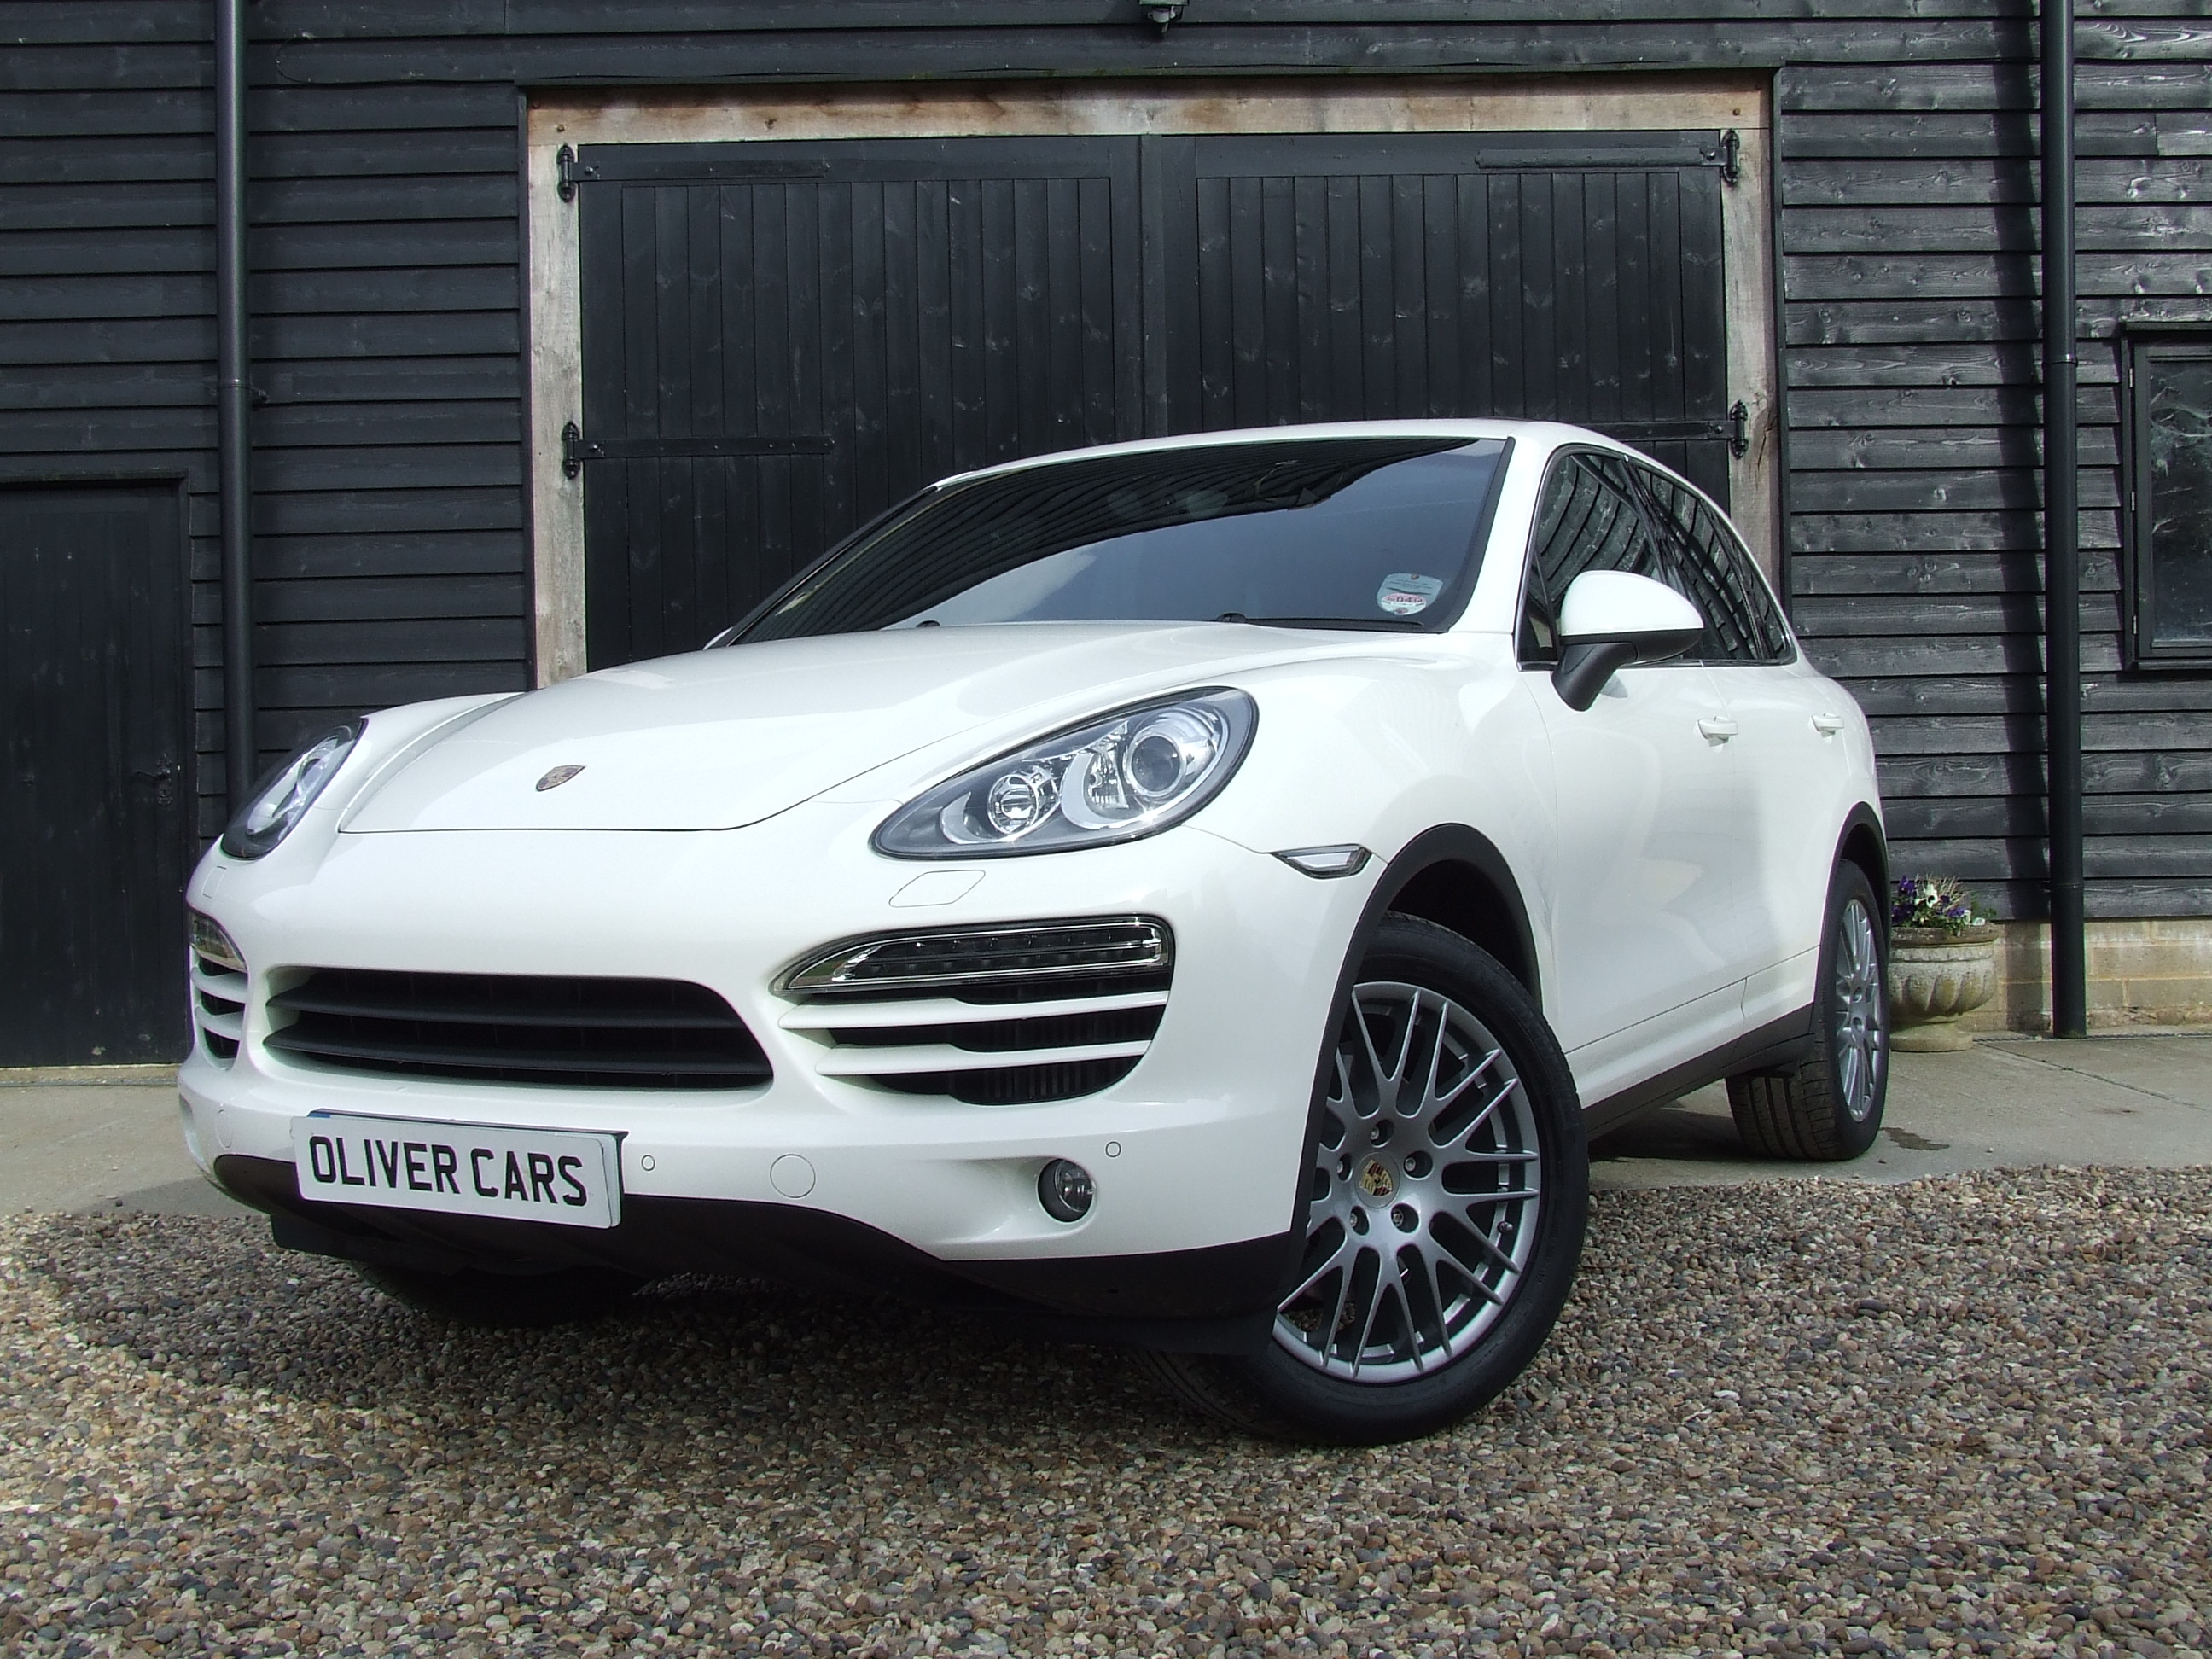 porsche cayenne v6 diesel 8 speed tiptronic s auto start stop oliver cars ltd. Black Bedroom Furniture Sets. Home Design Ideas